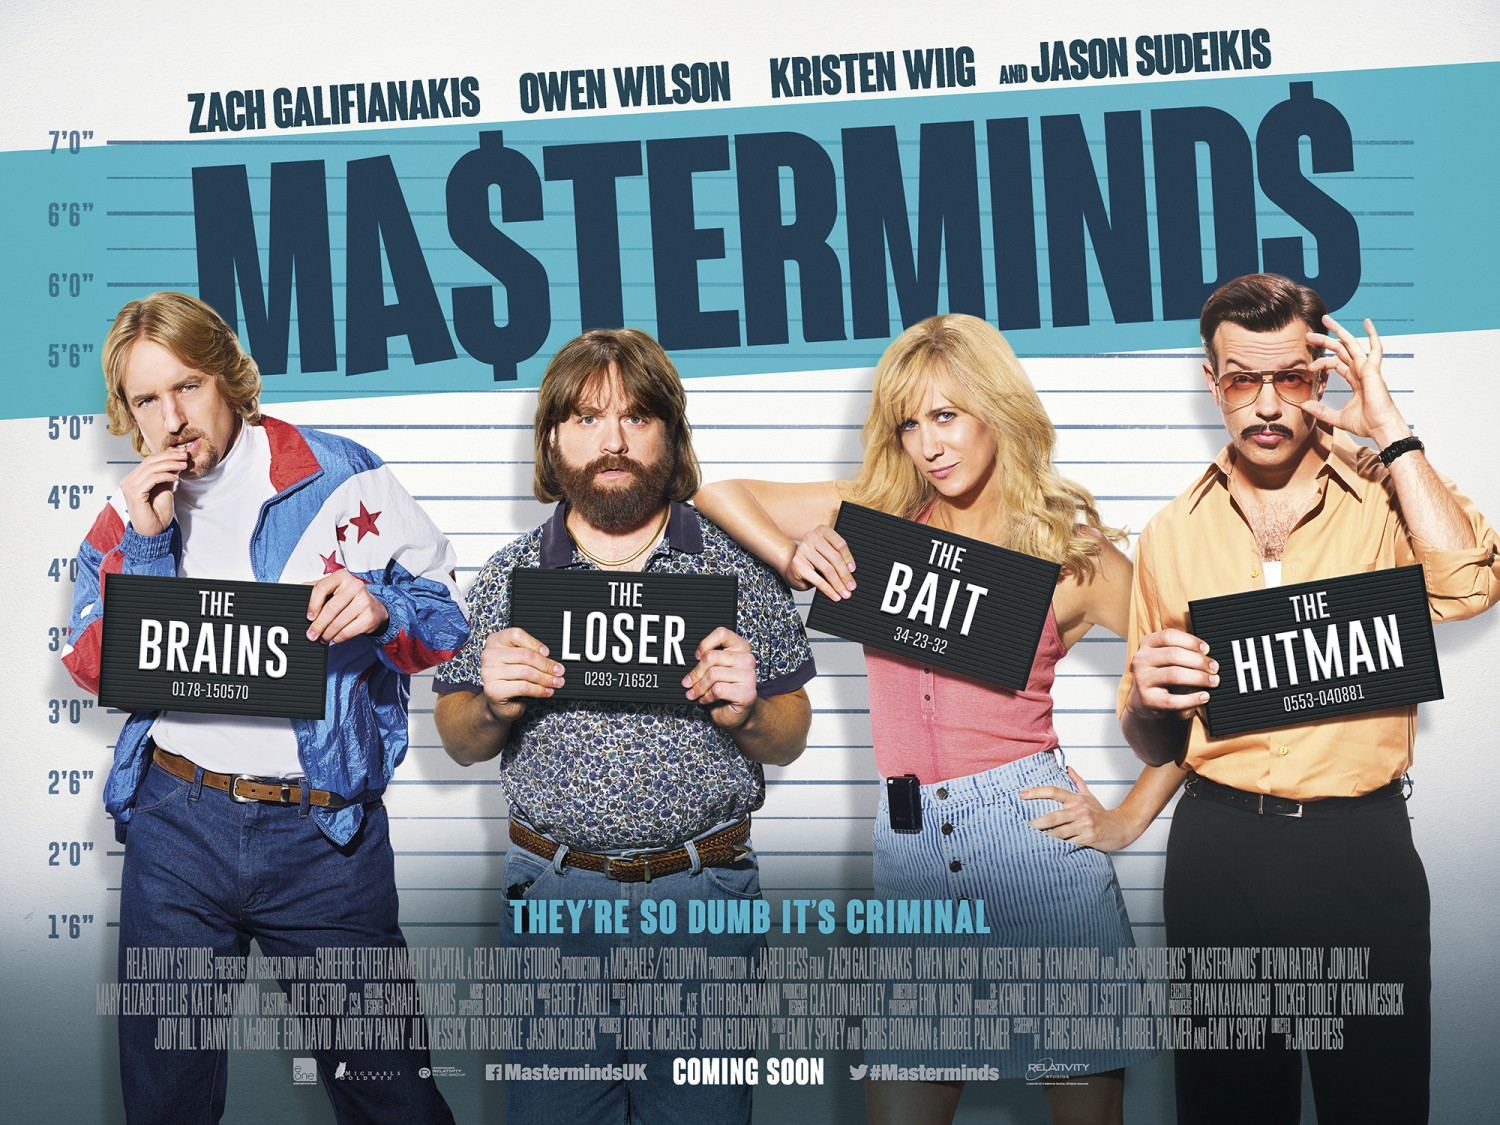 'Masterminds' release postponed indefinitely